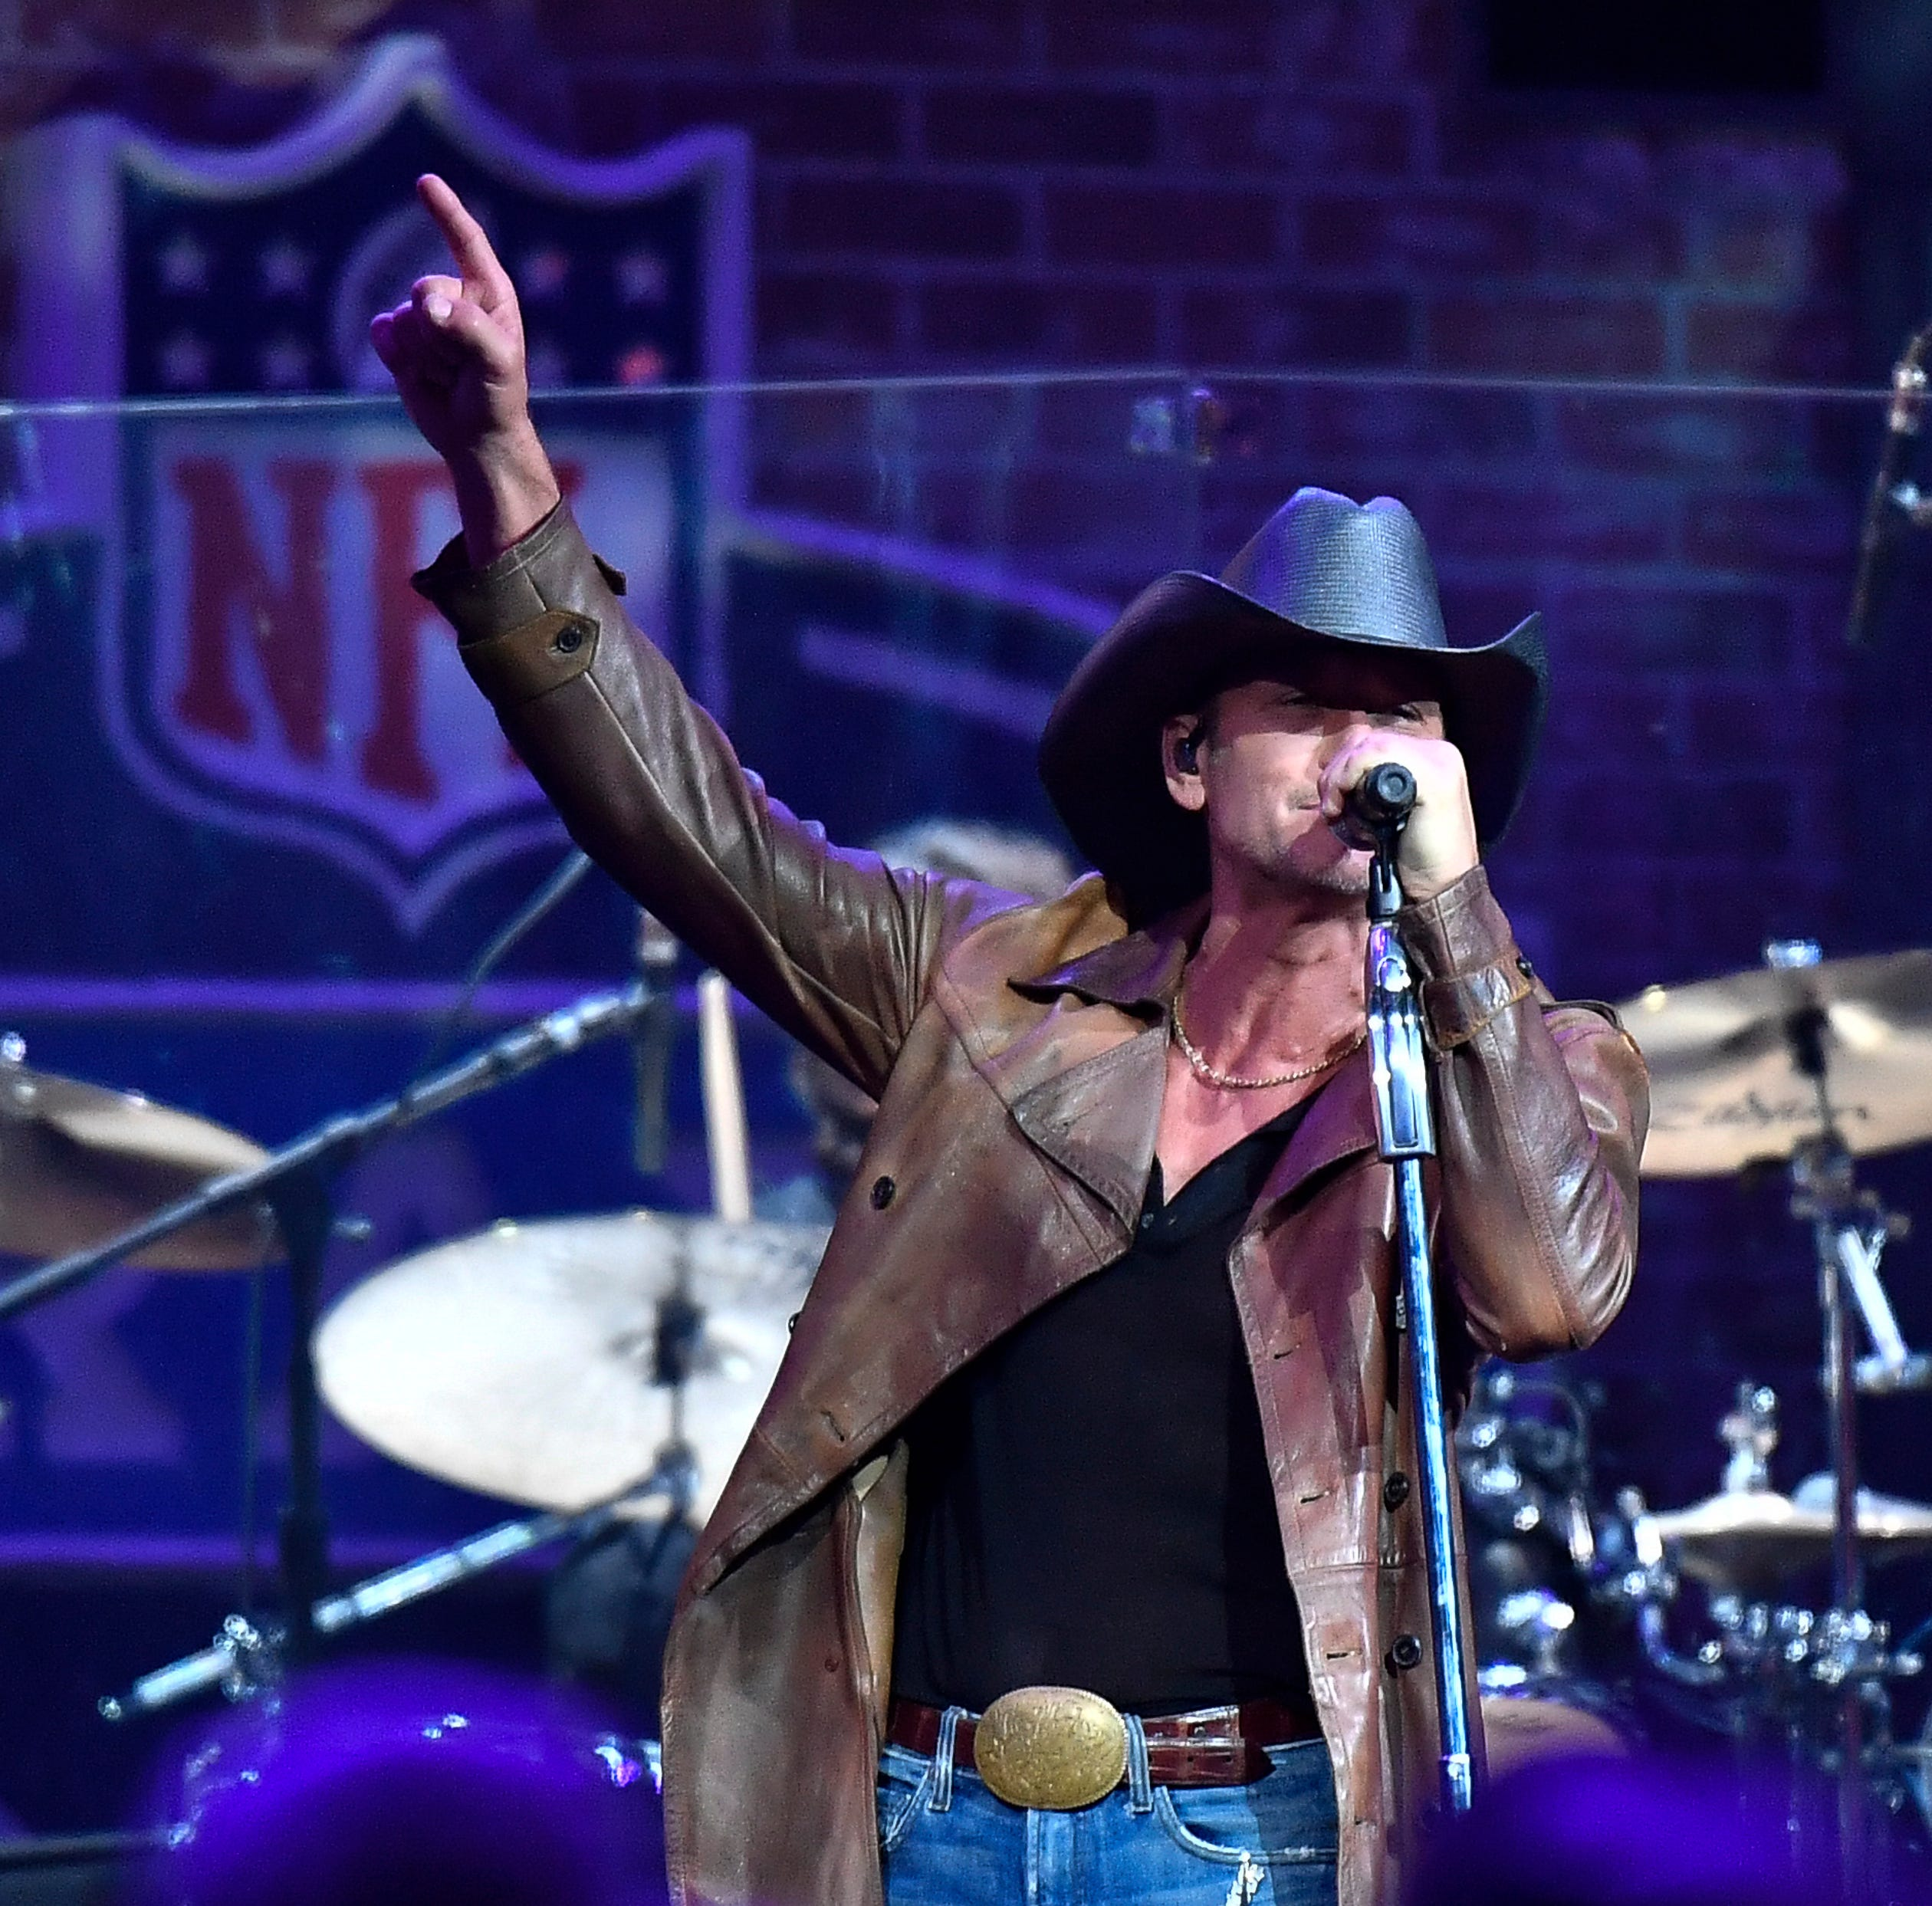 Tim McGraw tosses a country music touchdown at the NFL Draft in Nashville